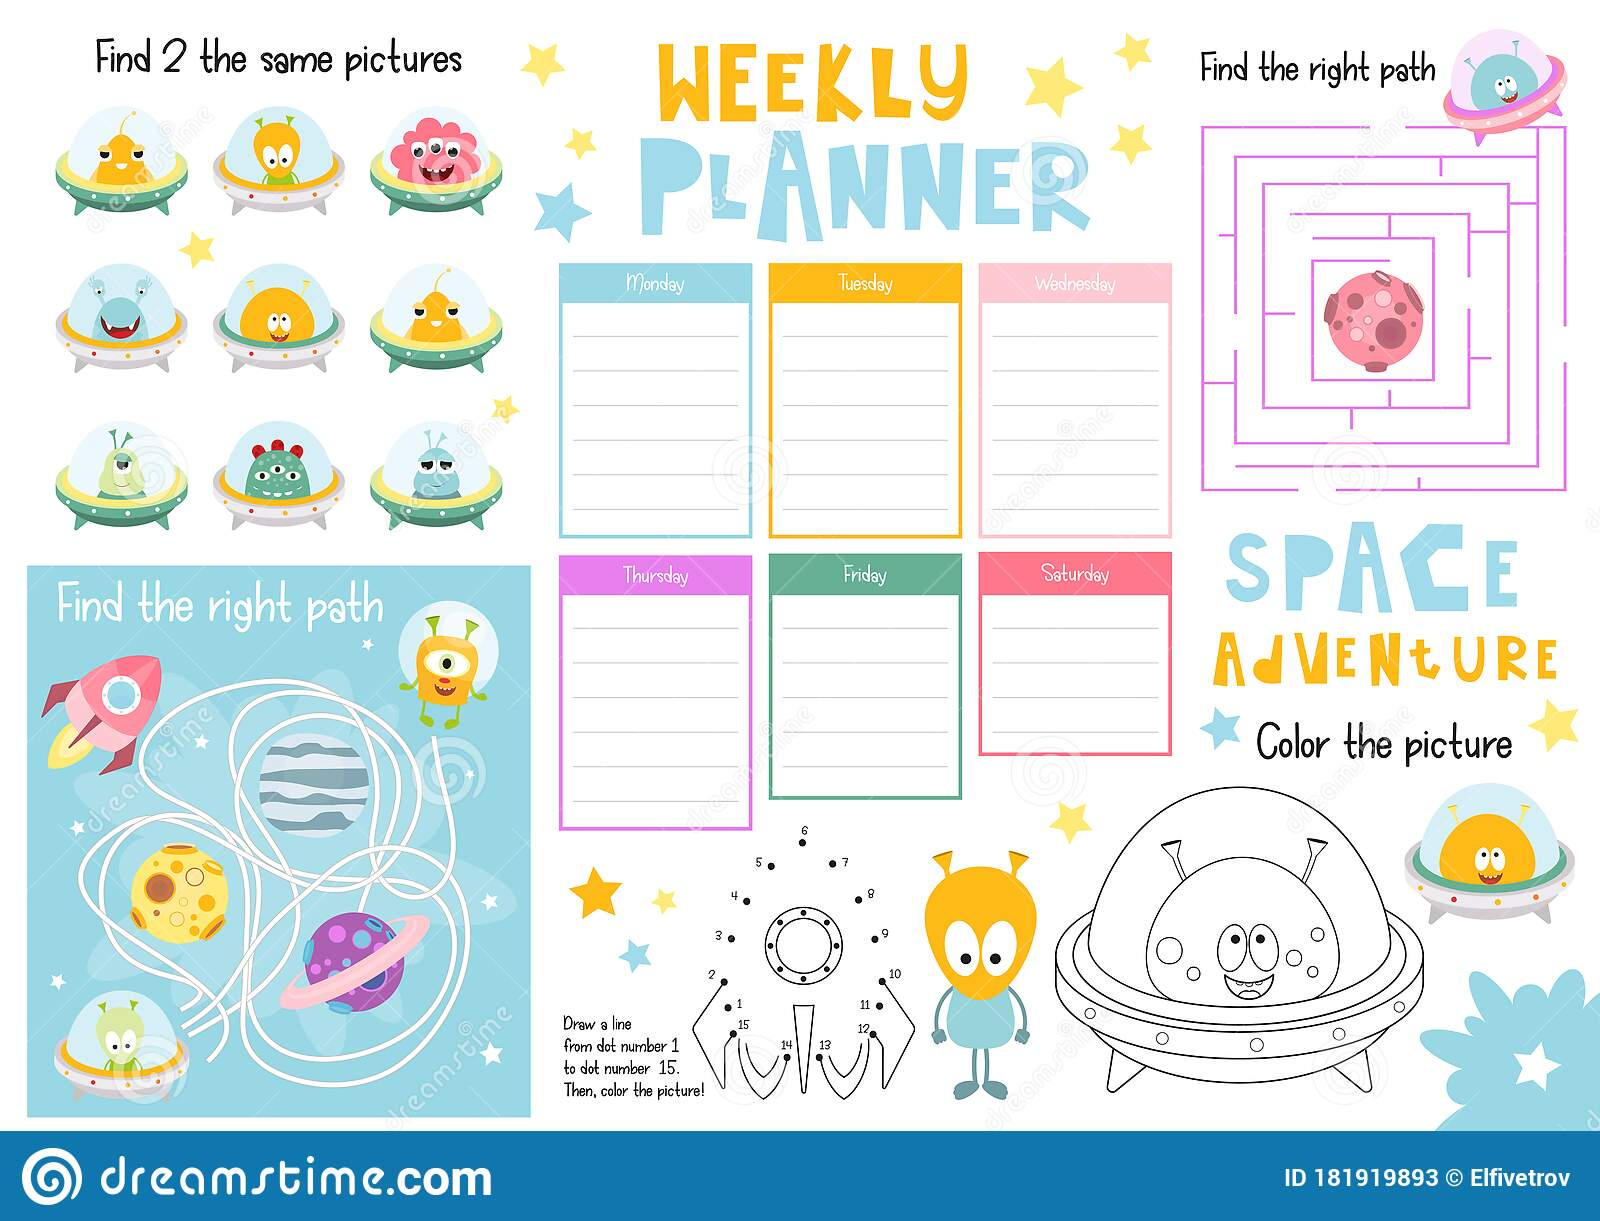 Have you ever had a student who cried all day for his or her mommy? Kids Weekly Planner Template Stock Vector Illustration Of Plan Puzzle 181919893